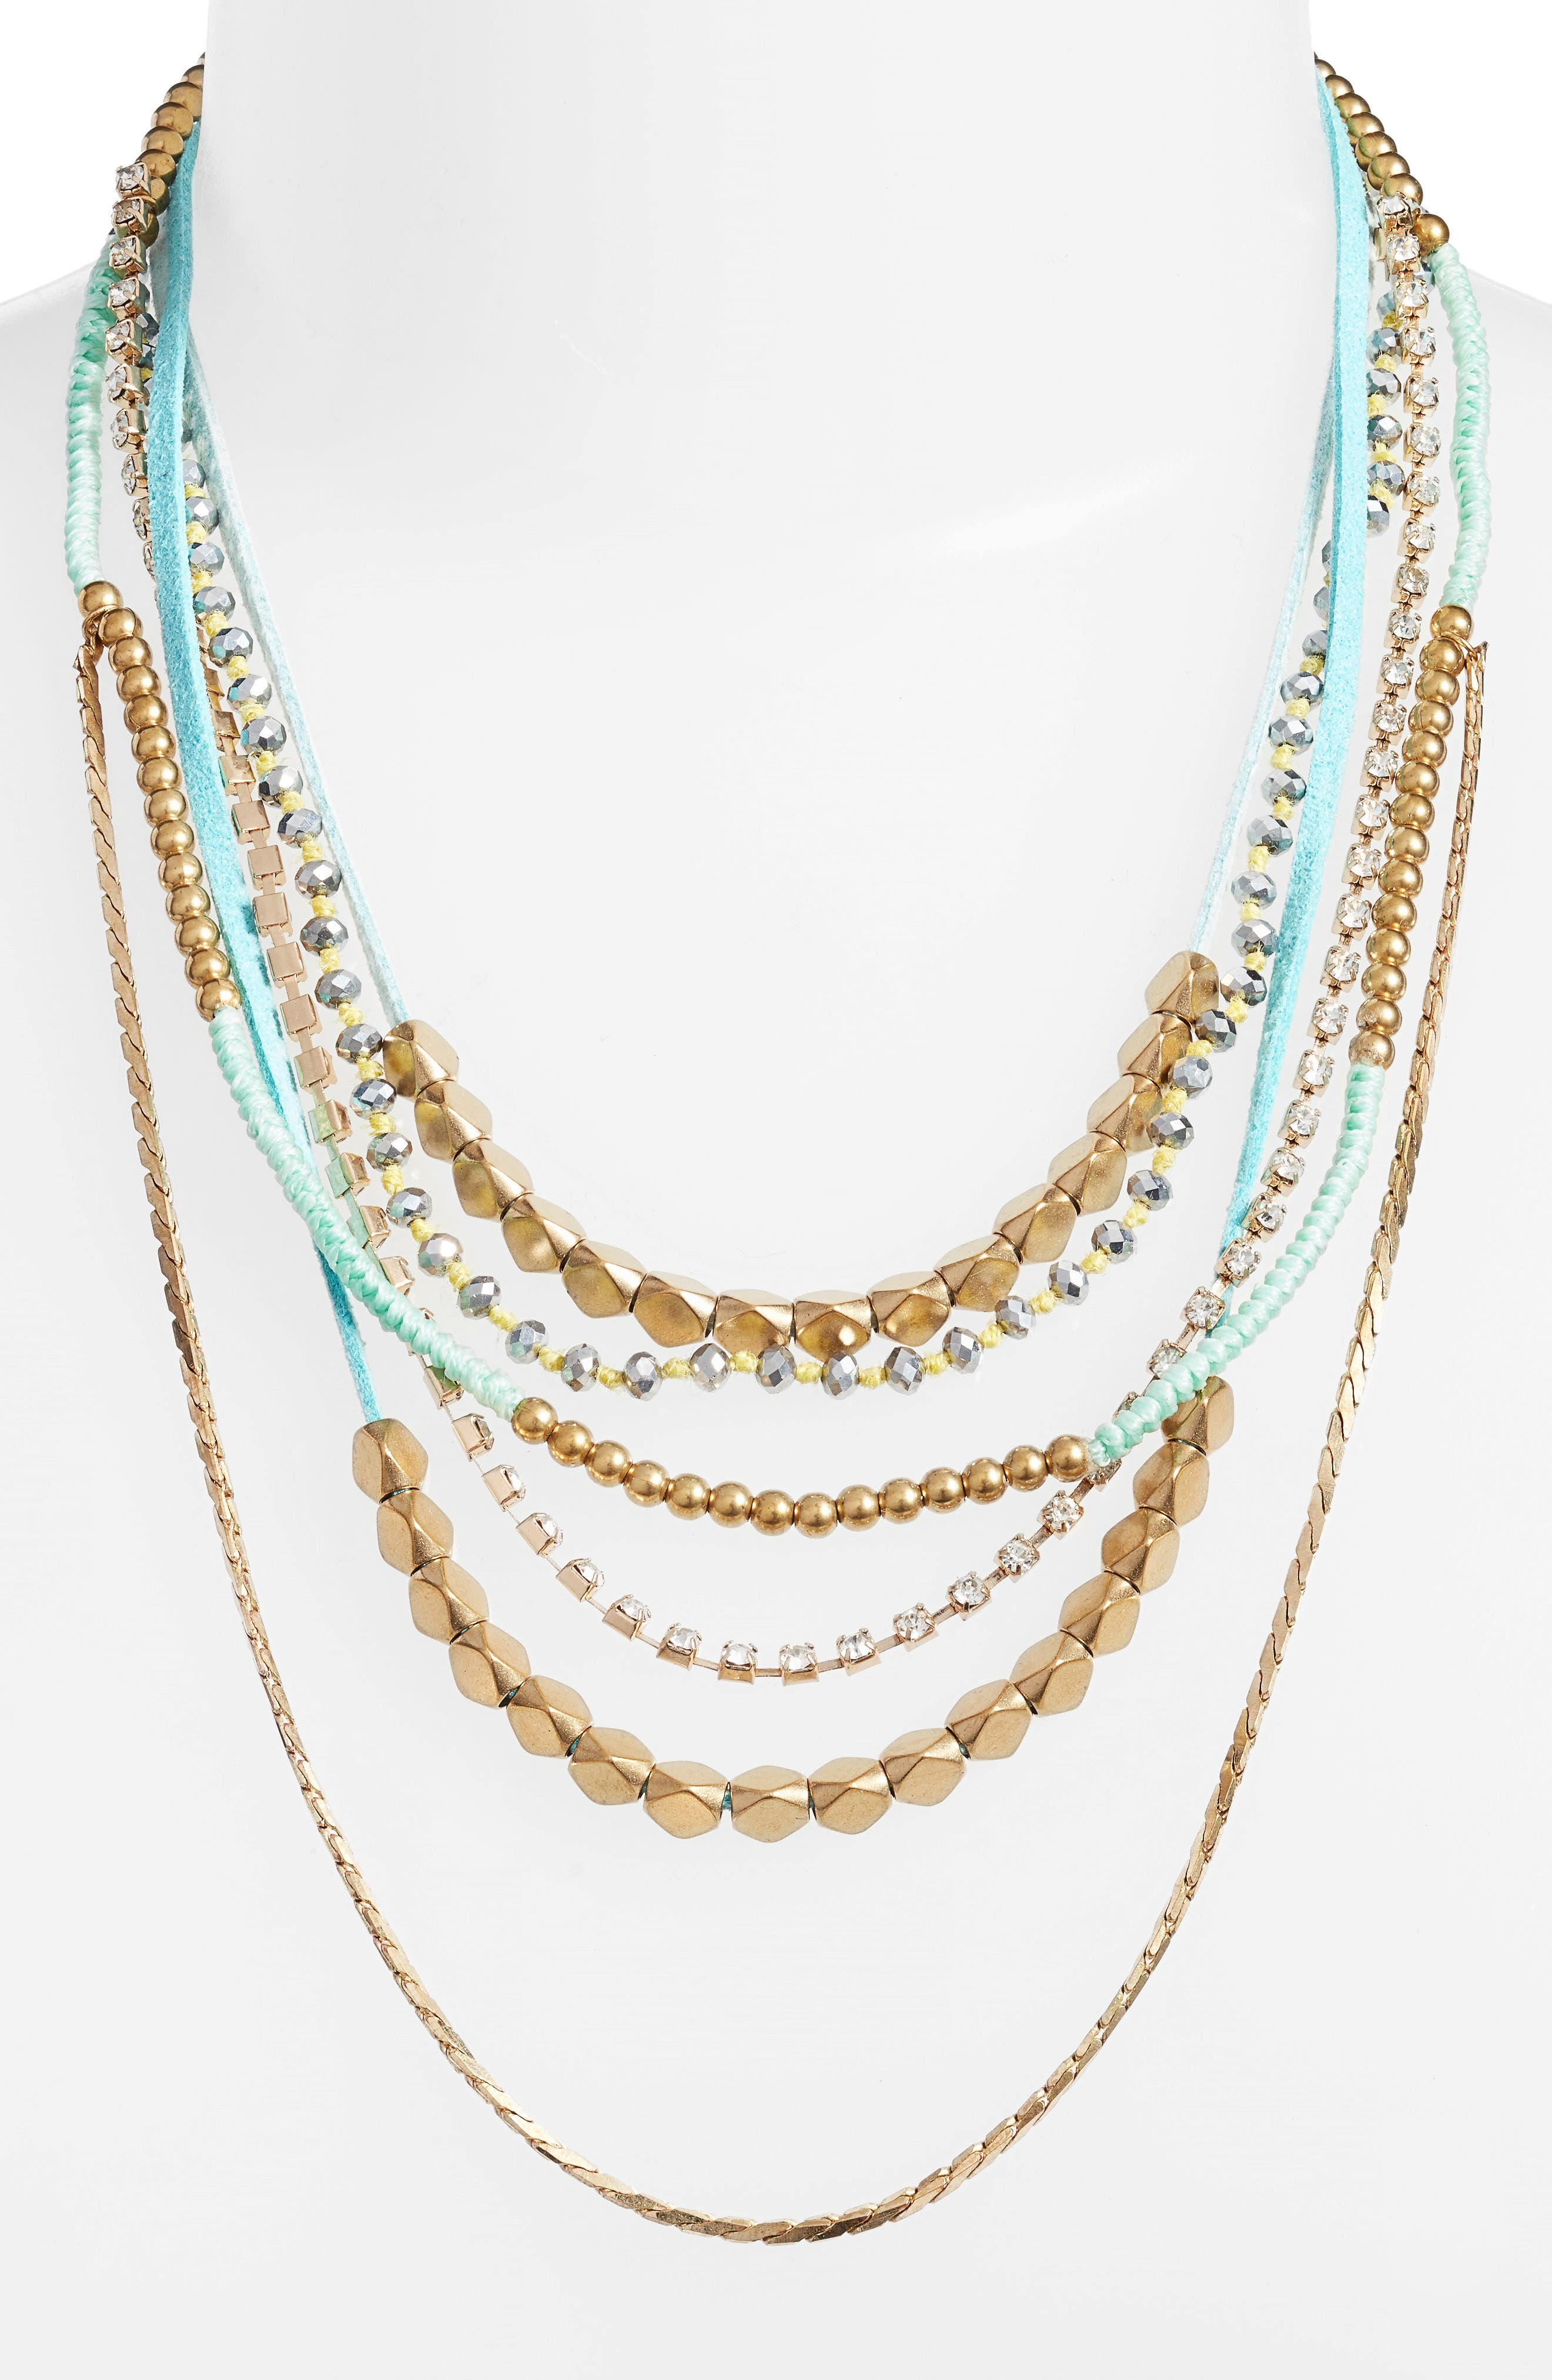 Main Image - Serefina Mixed Media Statement Necklace